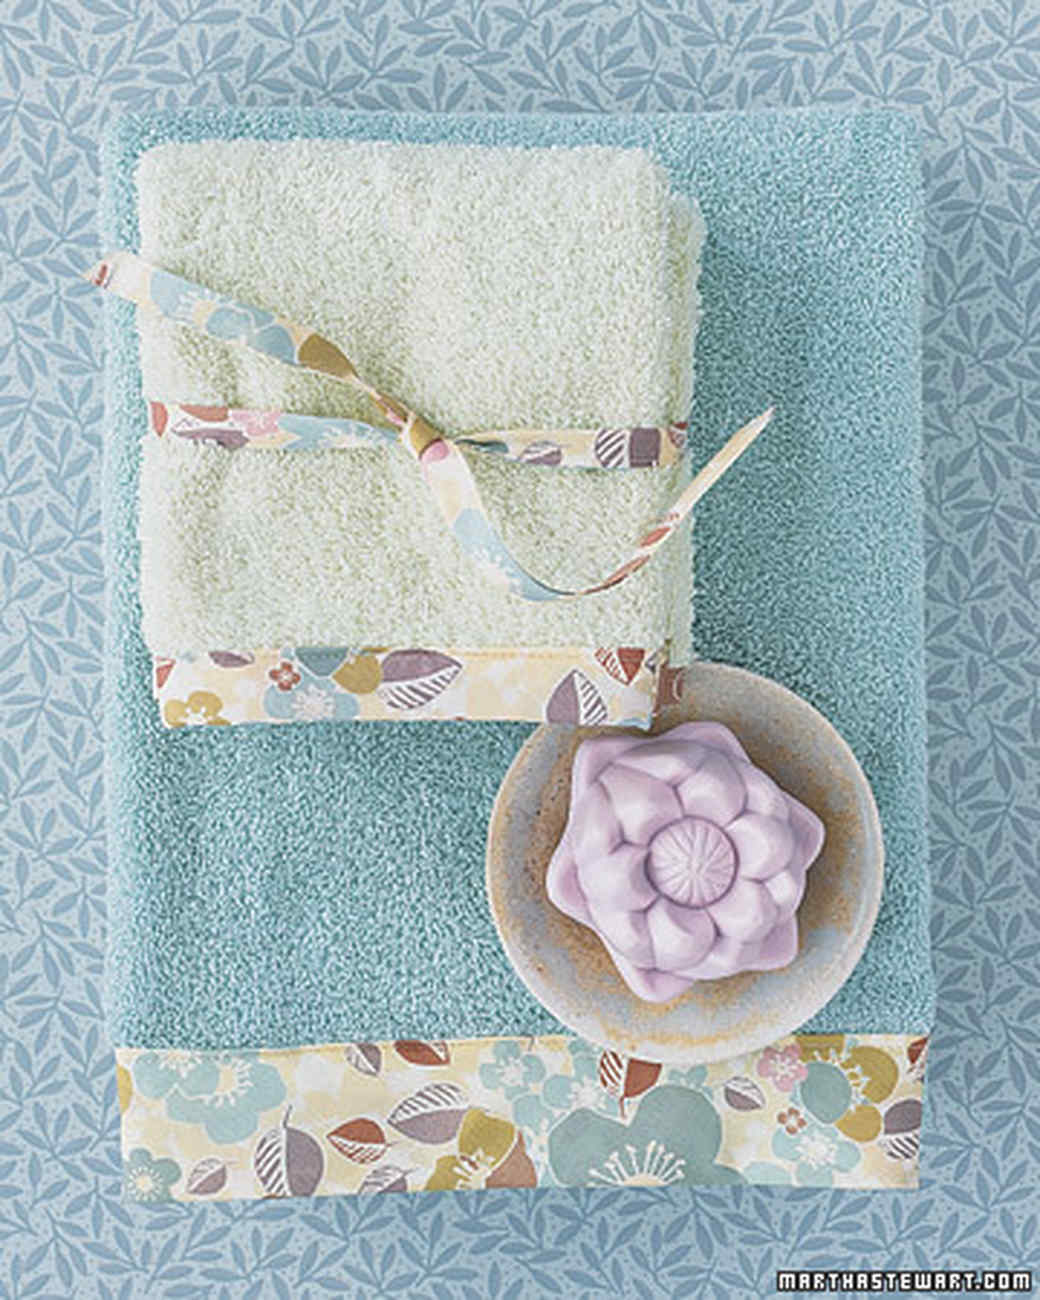 Bath Towels with Patterned Trim